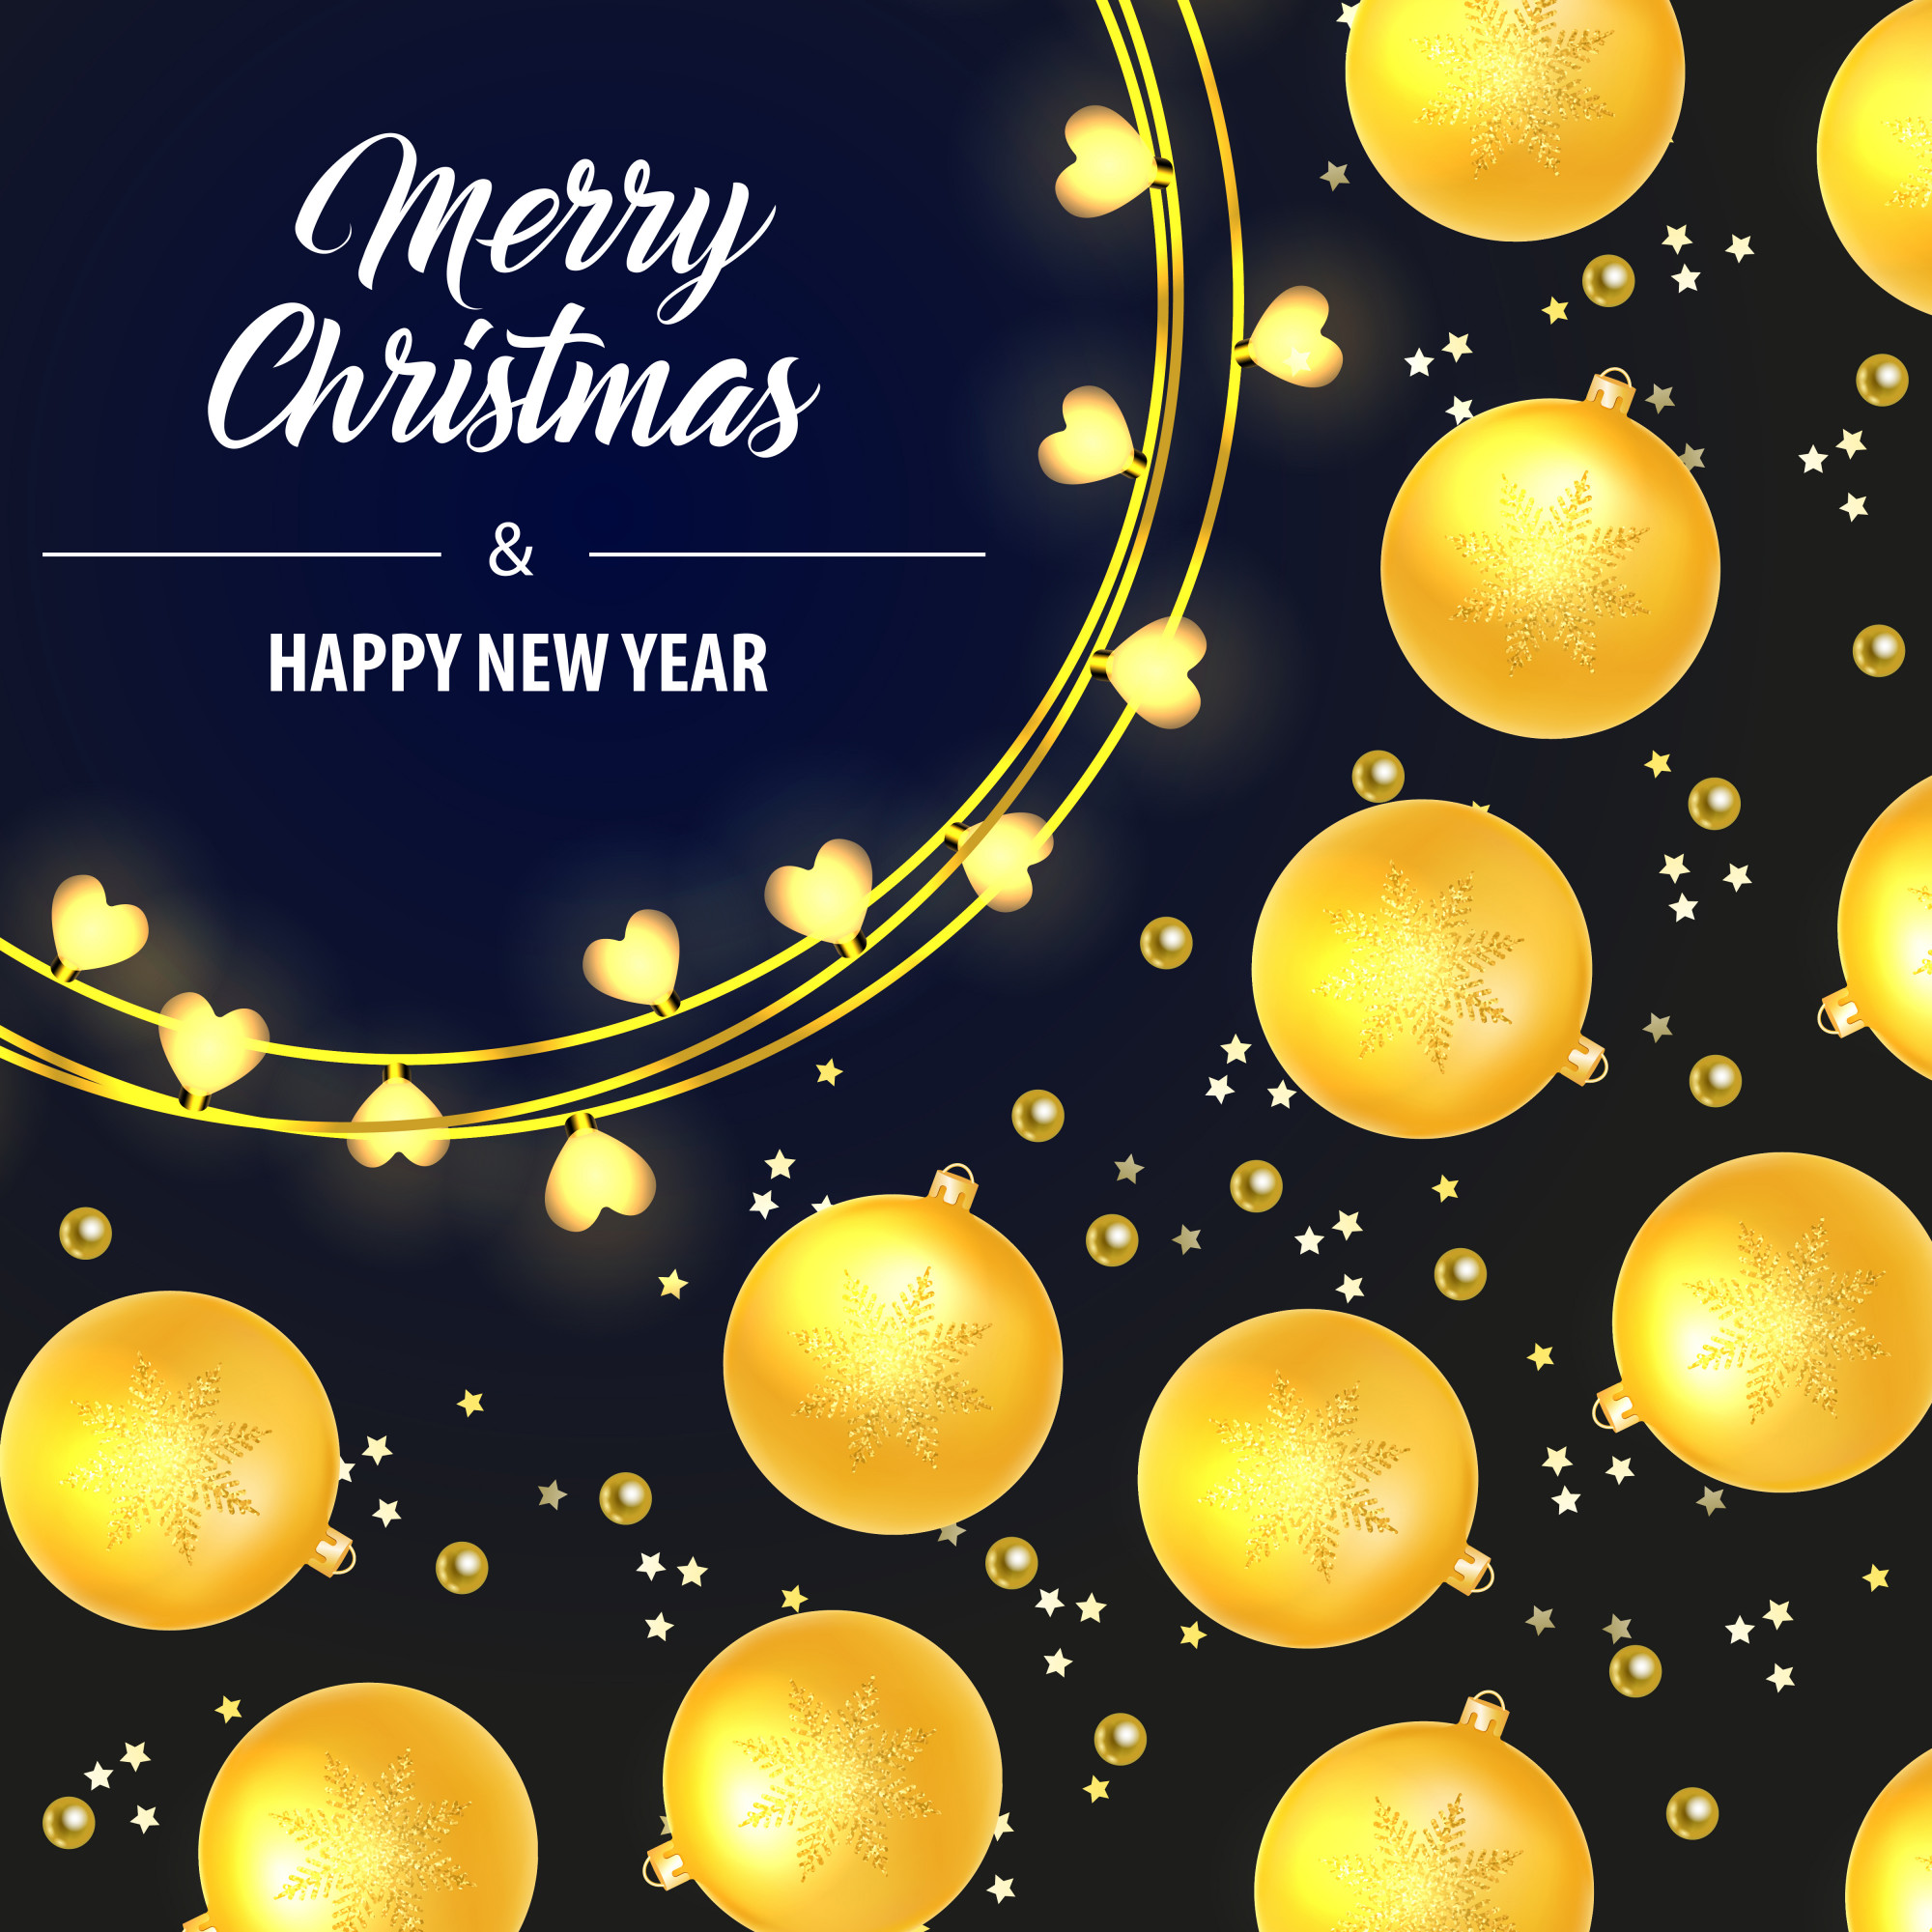 Merry Christmas lettering with yellow baubles